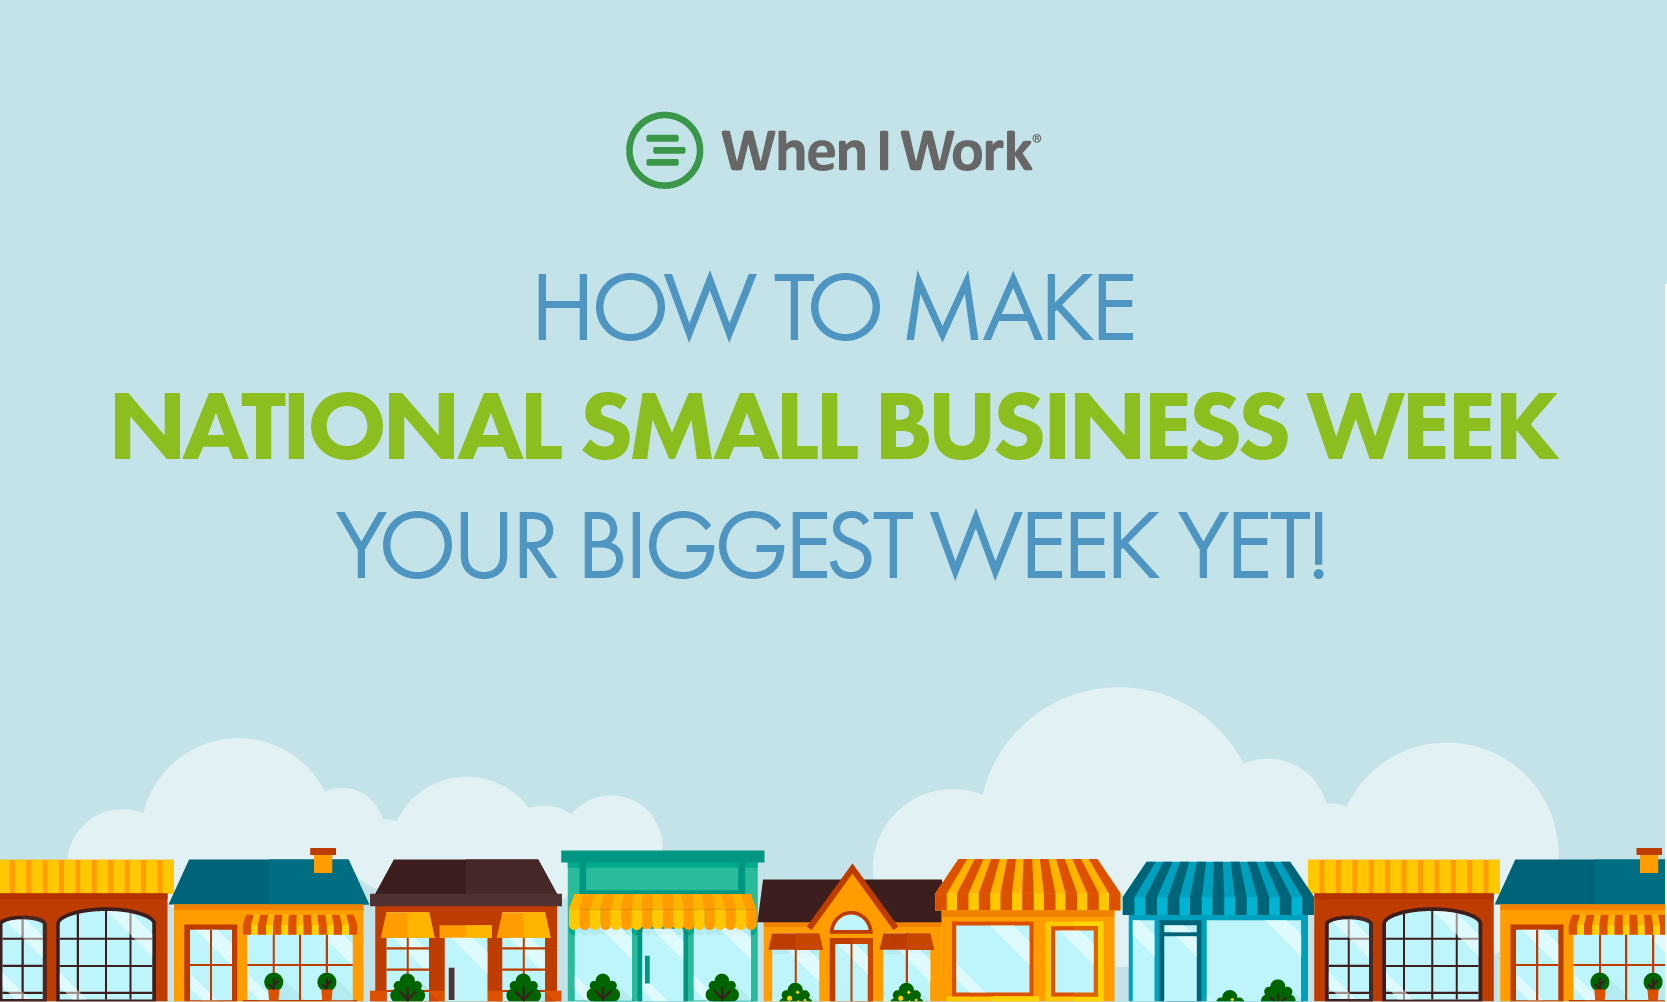 How to Make National Small Business Week Your Biggest Week